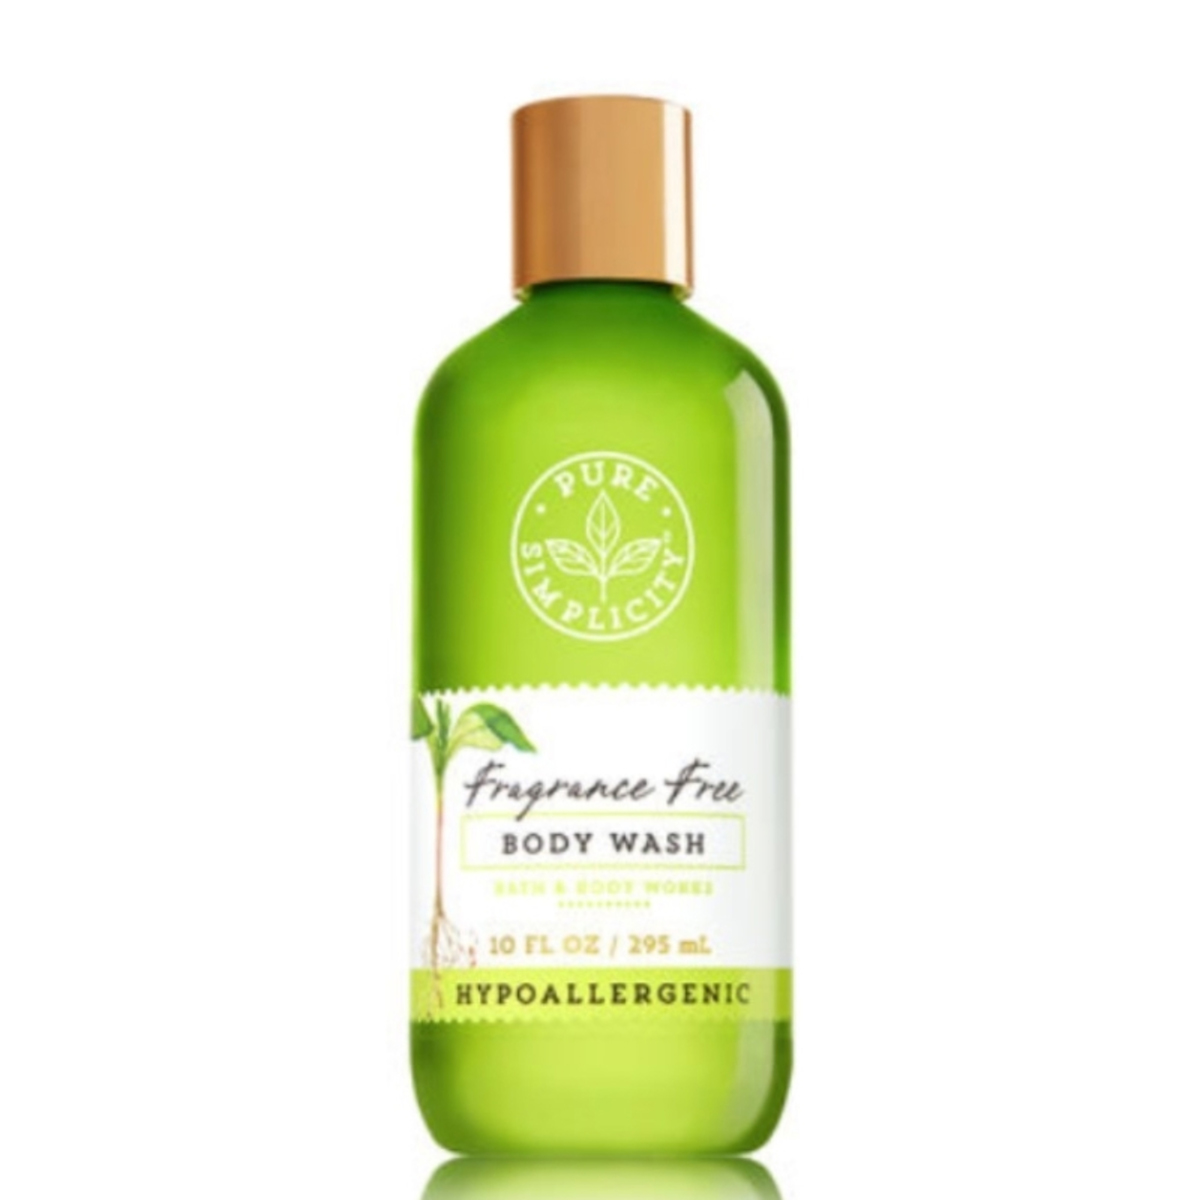 Fragrance Free Shower Gel (Parallel Imports Product)